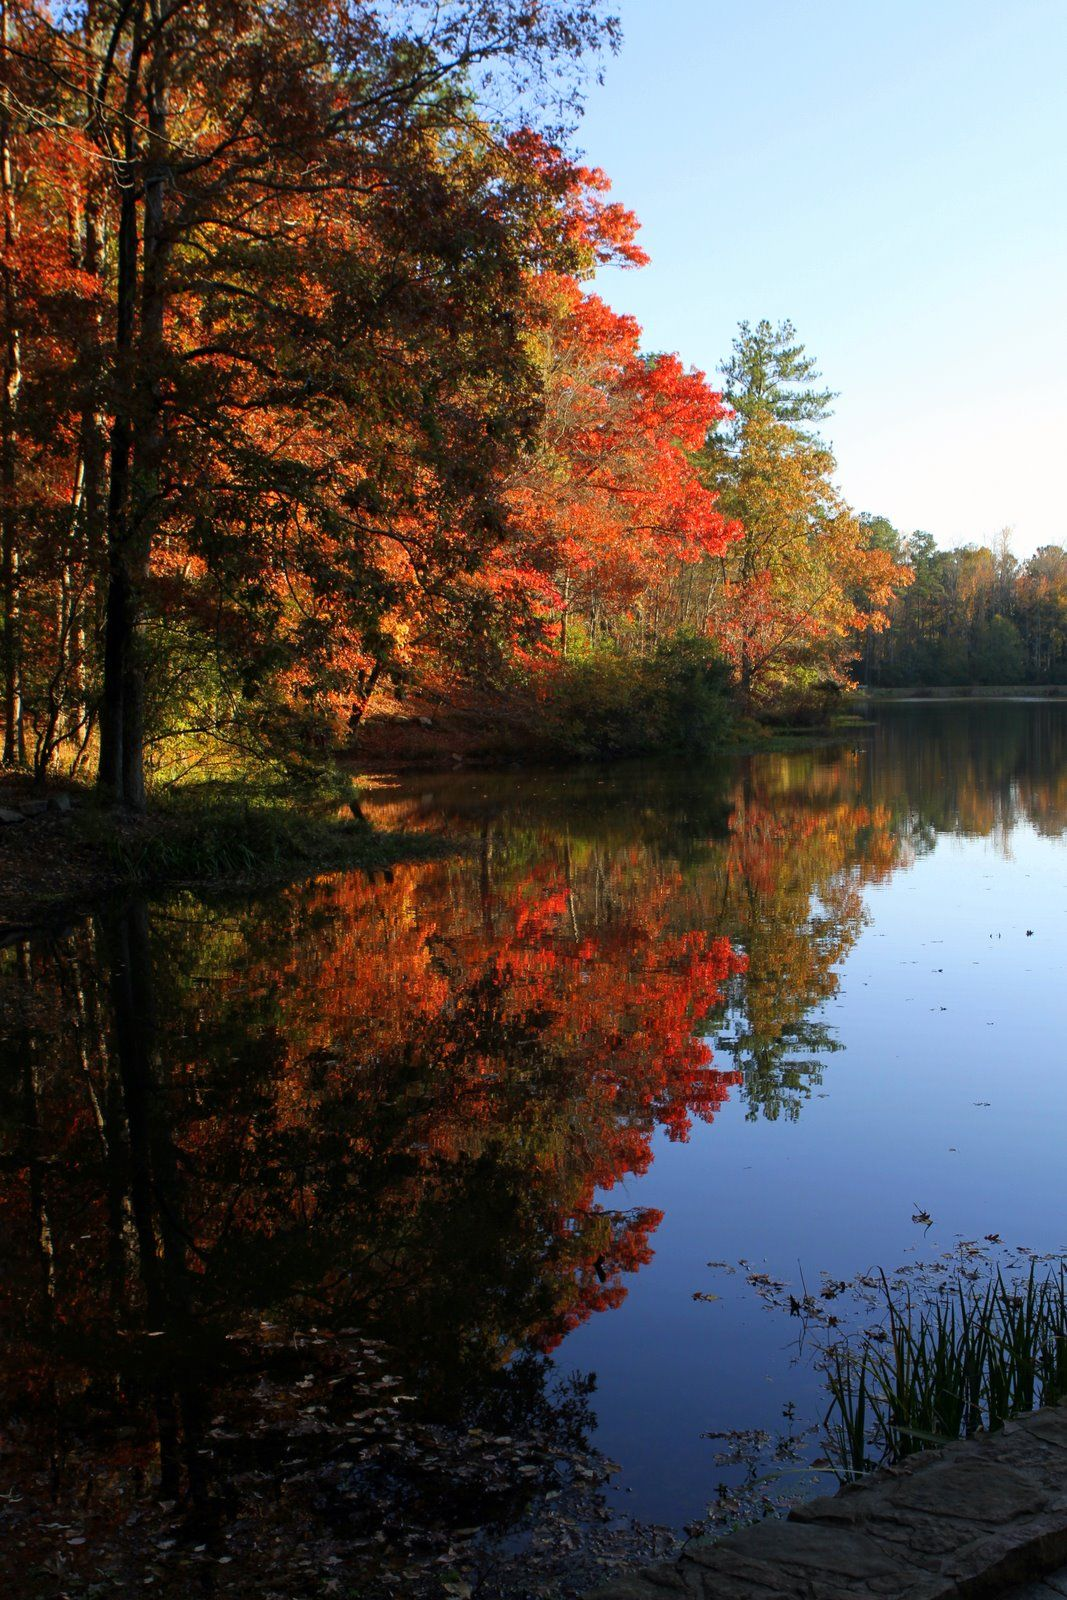 callaway gardens in the fall... so many wonderful days spent here ...